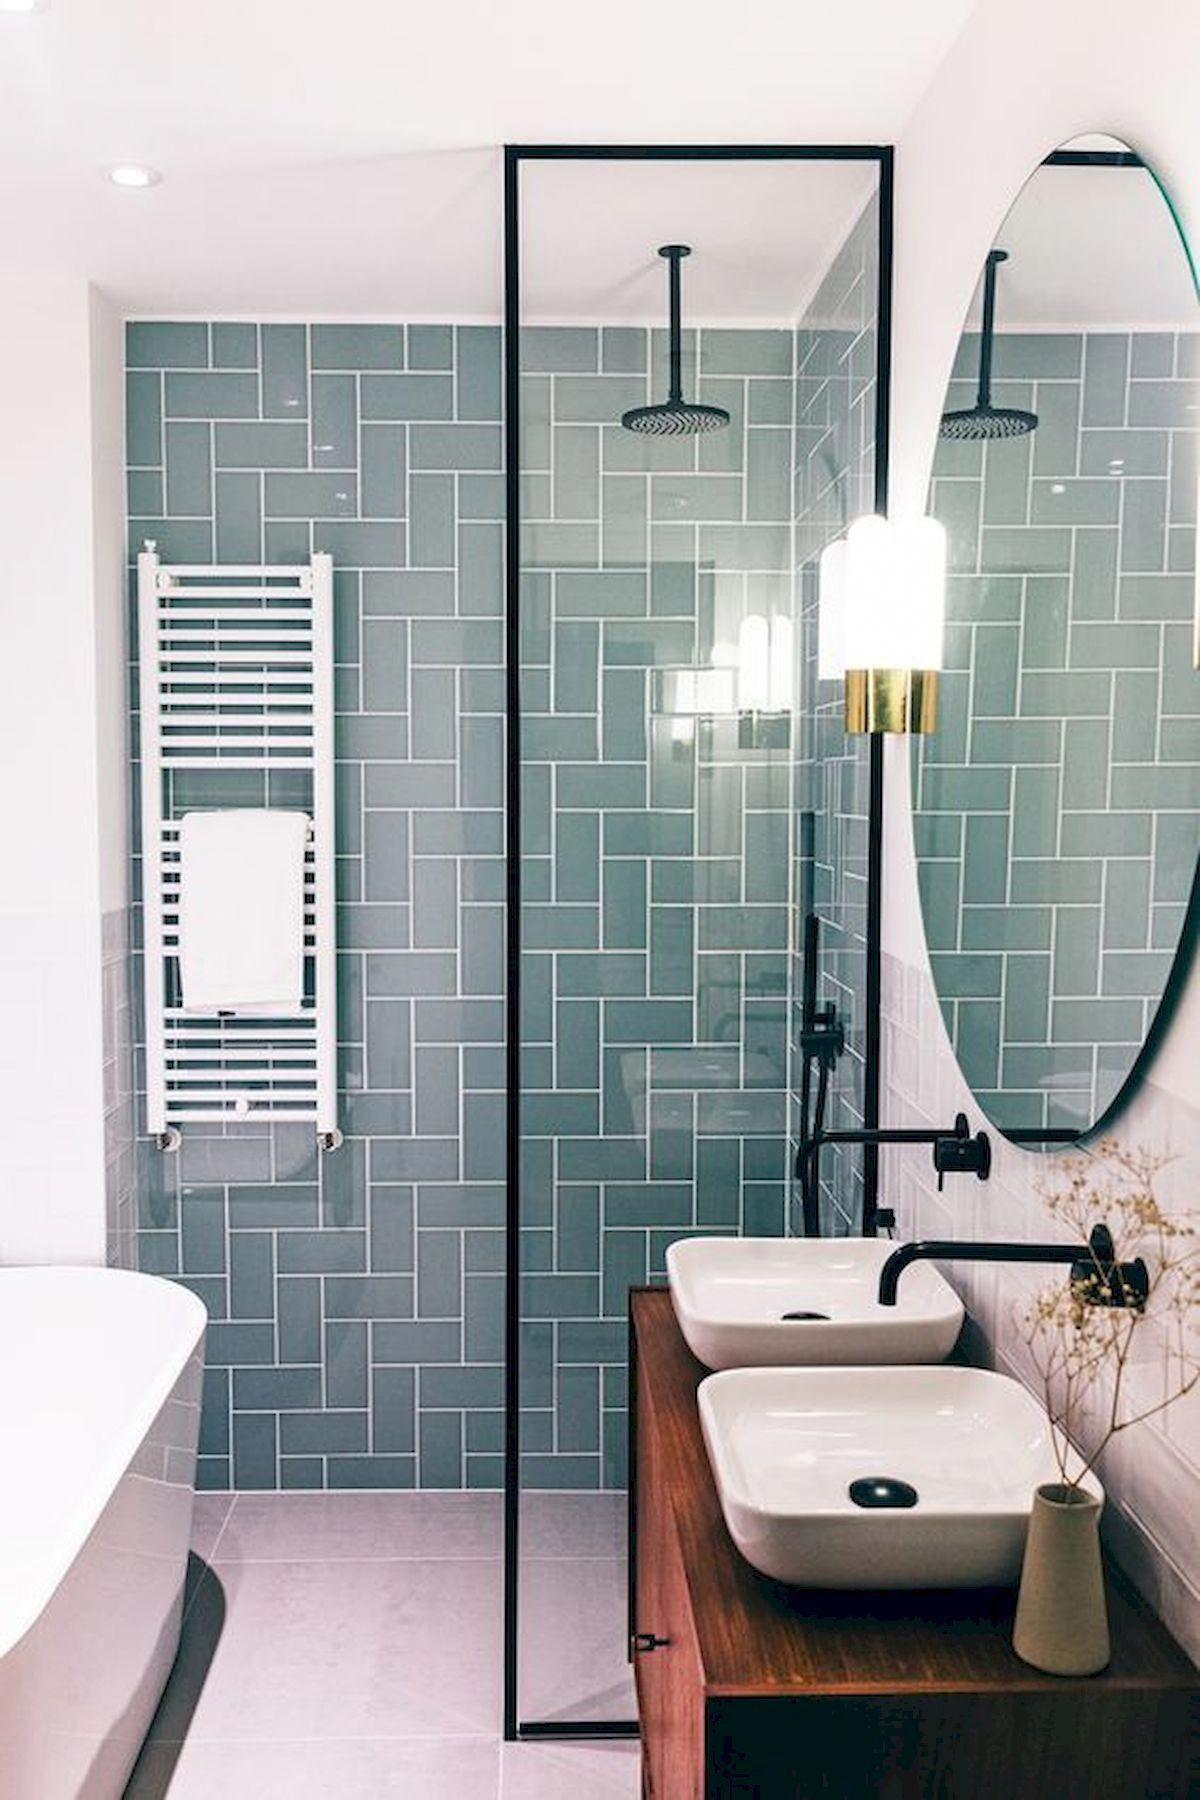 Open Shelves Can Work As Both Storage And Display Screen To Showcase Your Colorful Towe In 2020 Bathroom Interior Design Small Bathroom Remodel Bathroom Remodel Shower